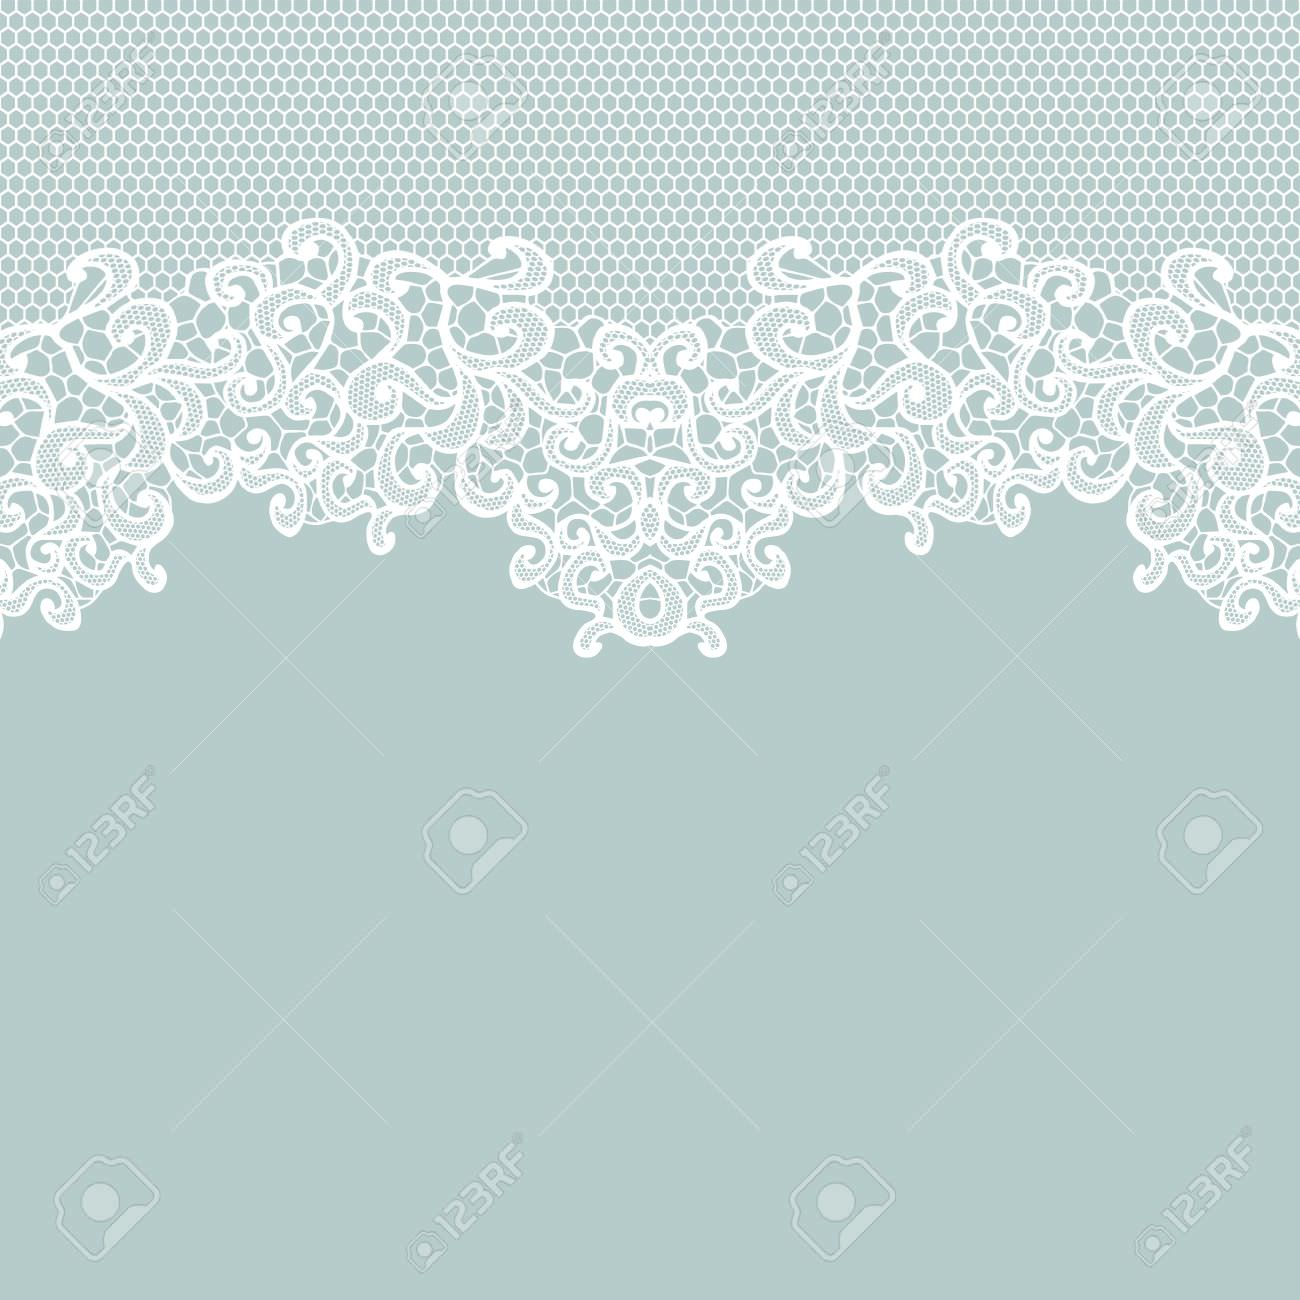 white lace tumblr backgrounds - photo #16